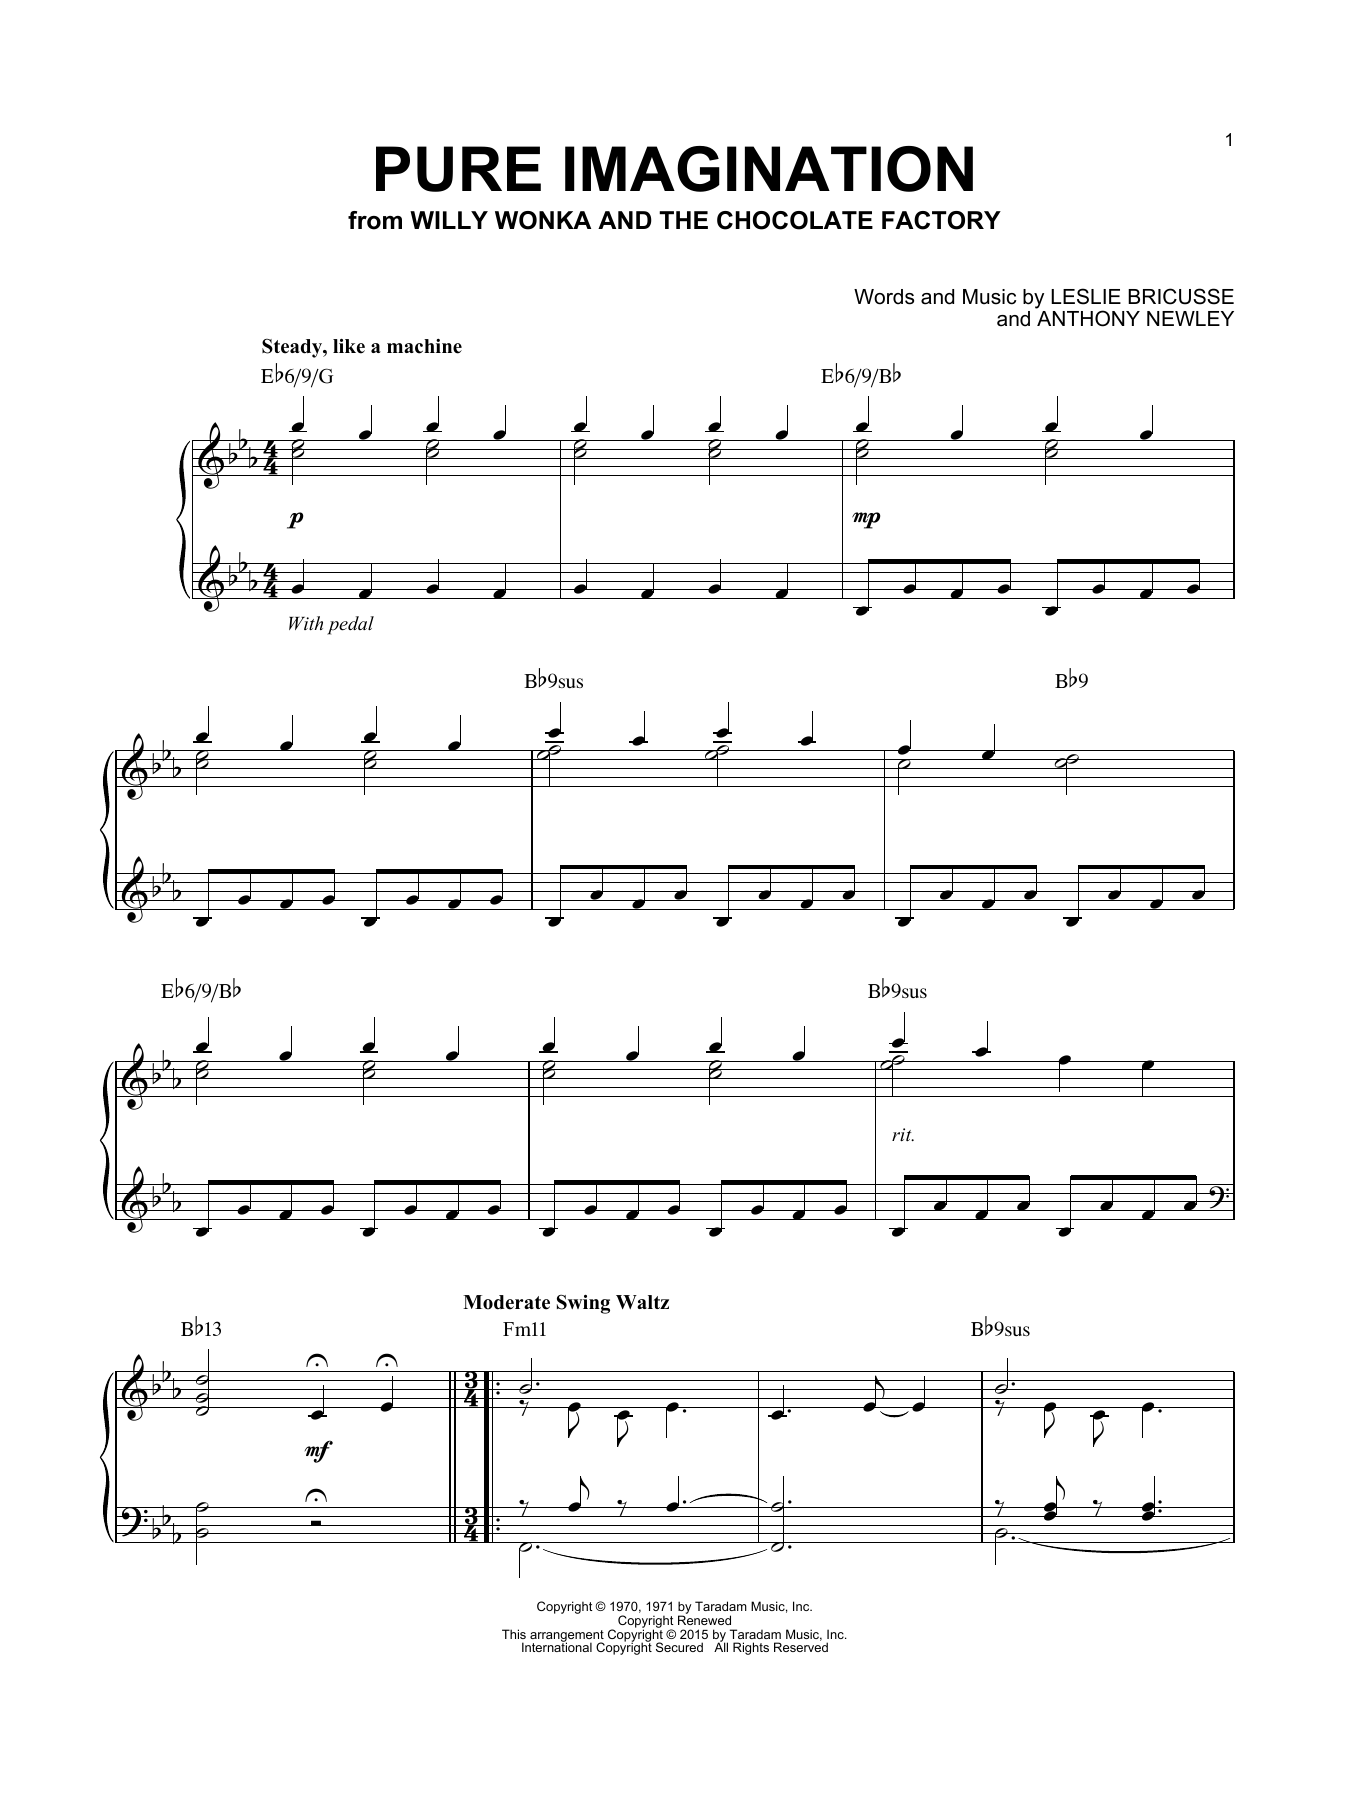 Willy Wonka & the Chocolate Factory Pure Imagination [Jazz version] (arr. Brent Edstrom) sheet music notes and chords